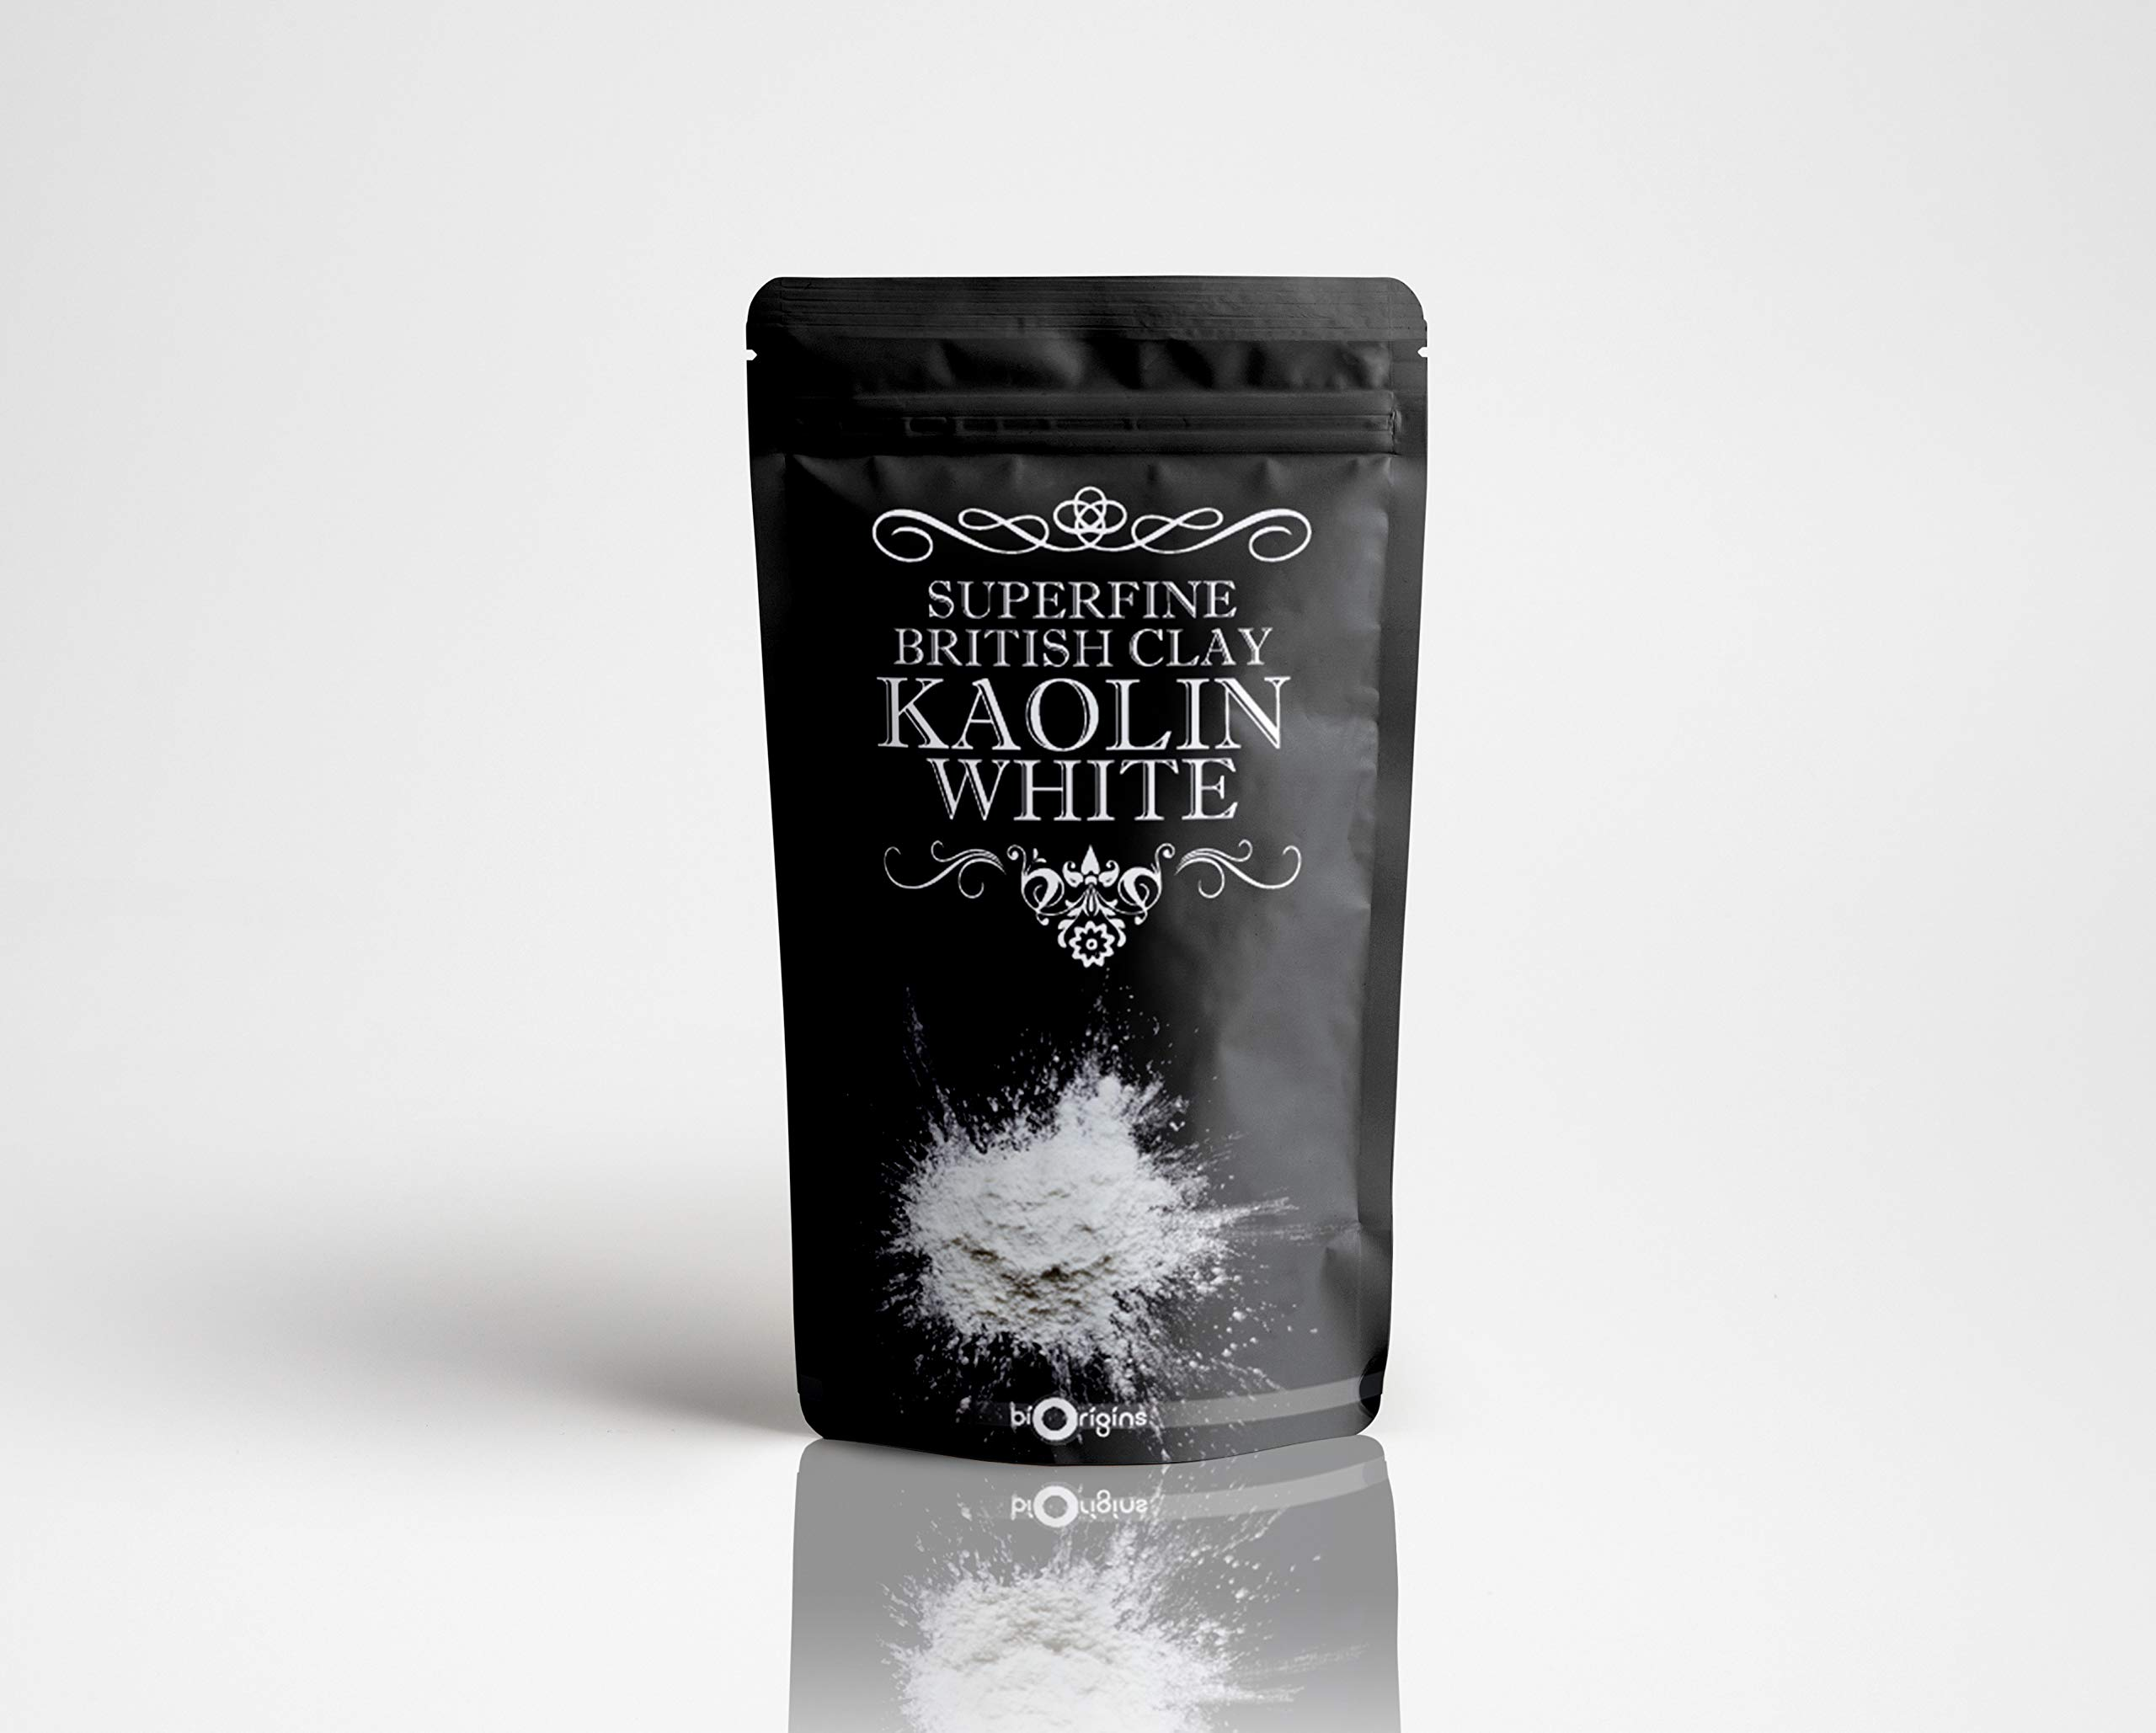 Mystic Moments Kaolin White Superfine British Clay - 100g